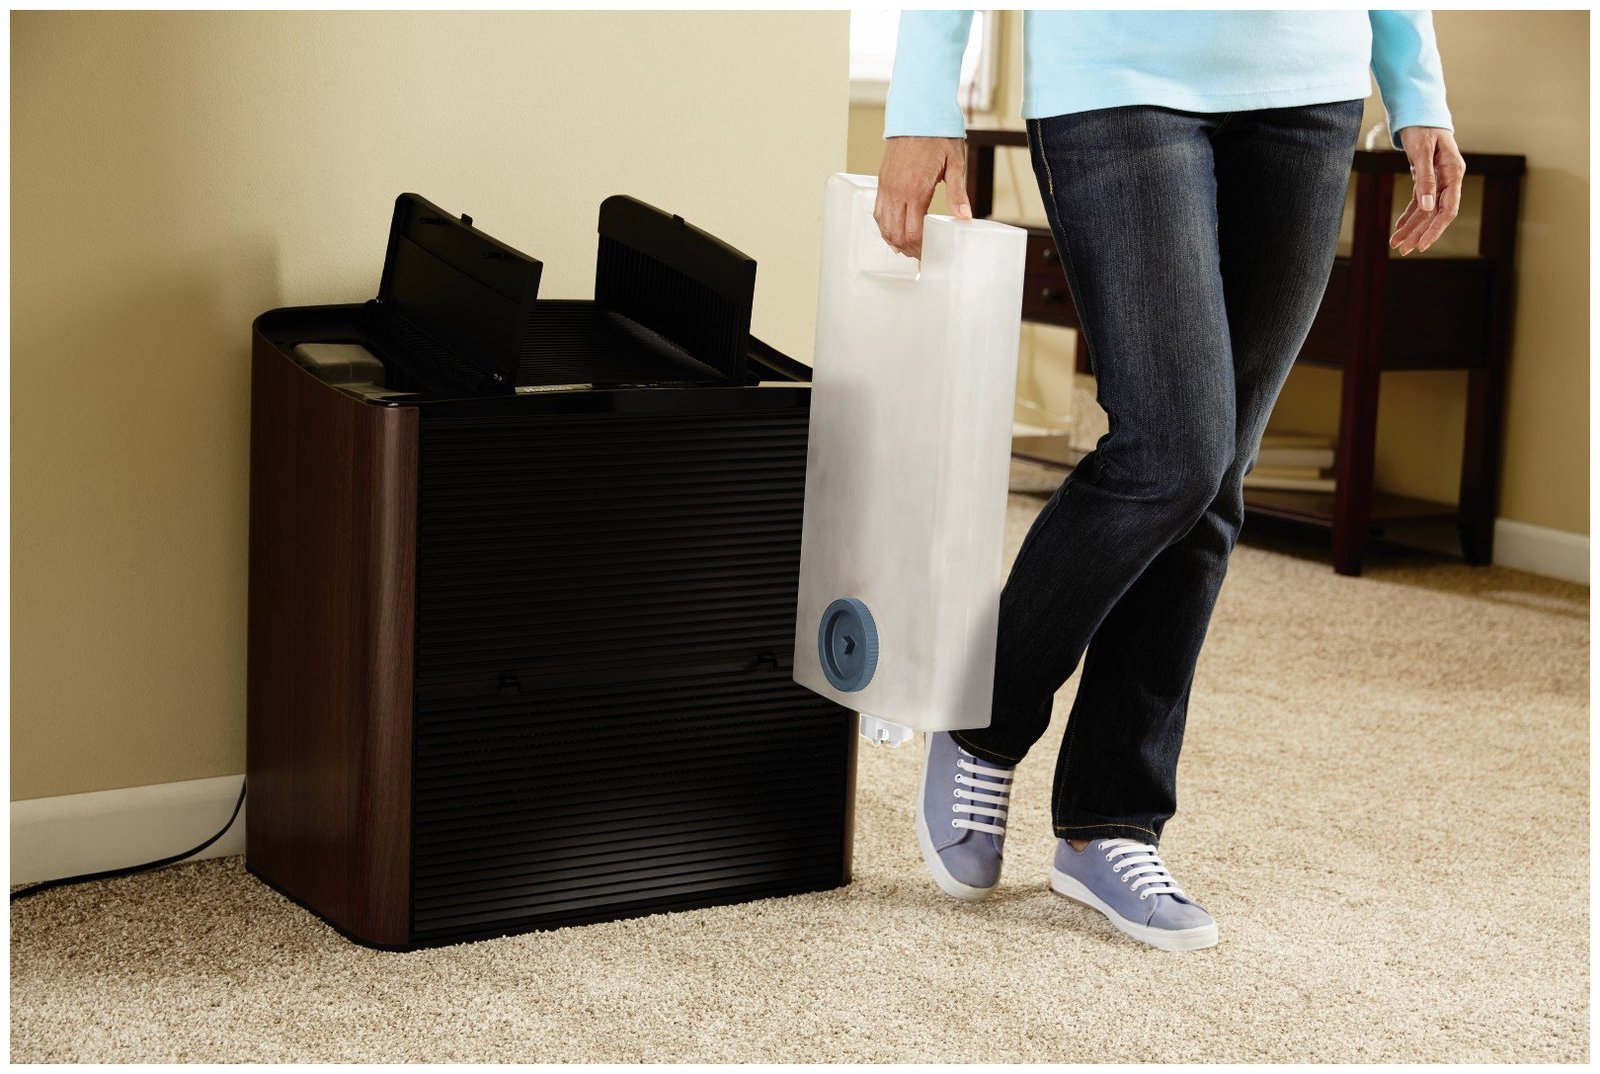 Holmes Smart WeMo Enabled Humidifier